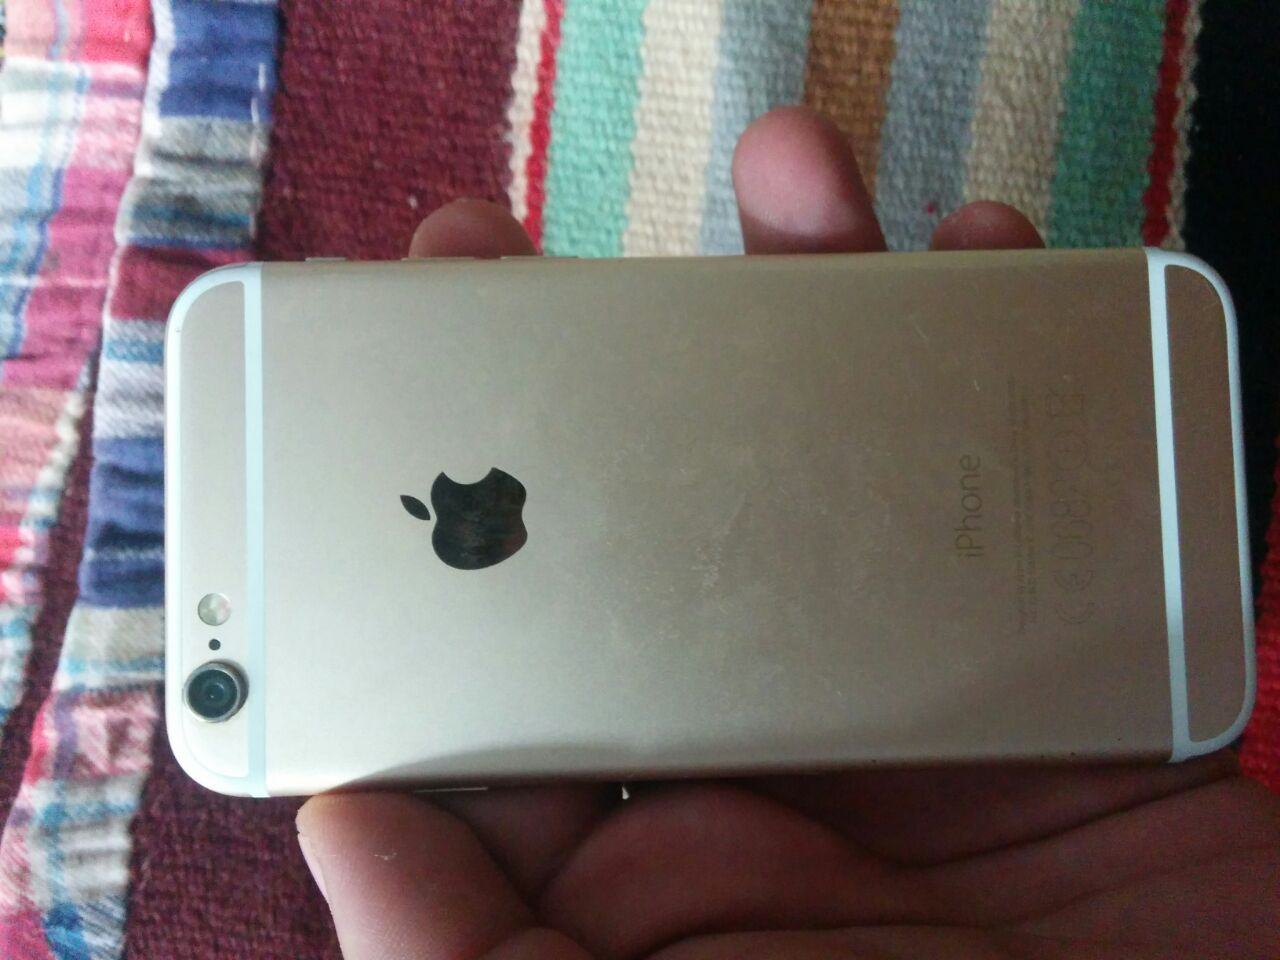 Iphone 6 128gb factory unlocked for sale - photo 2